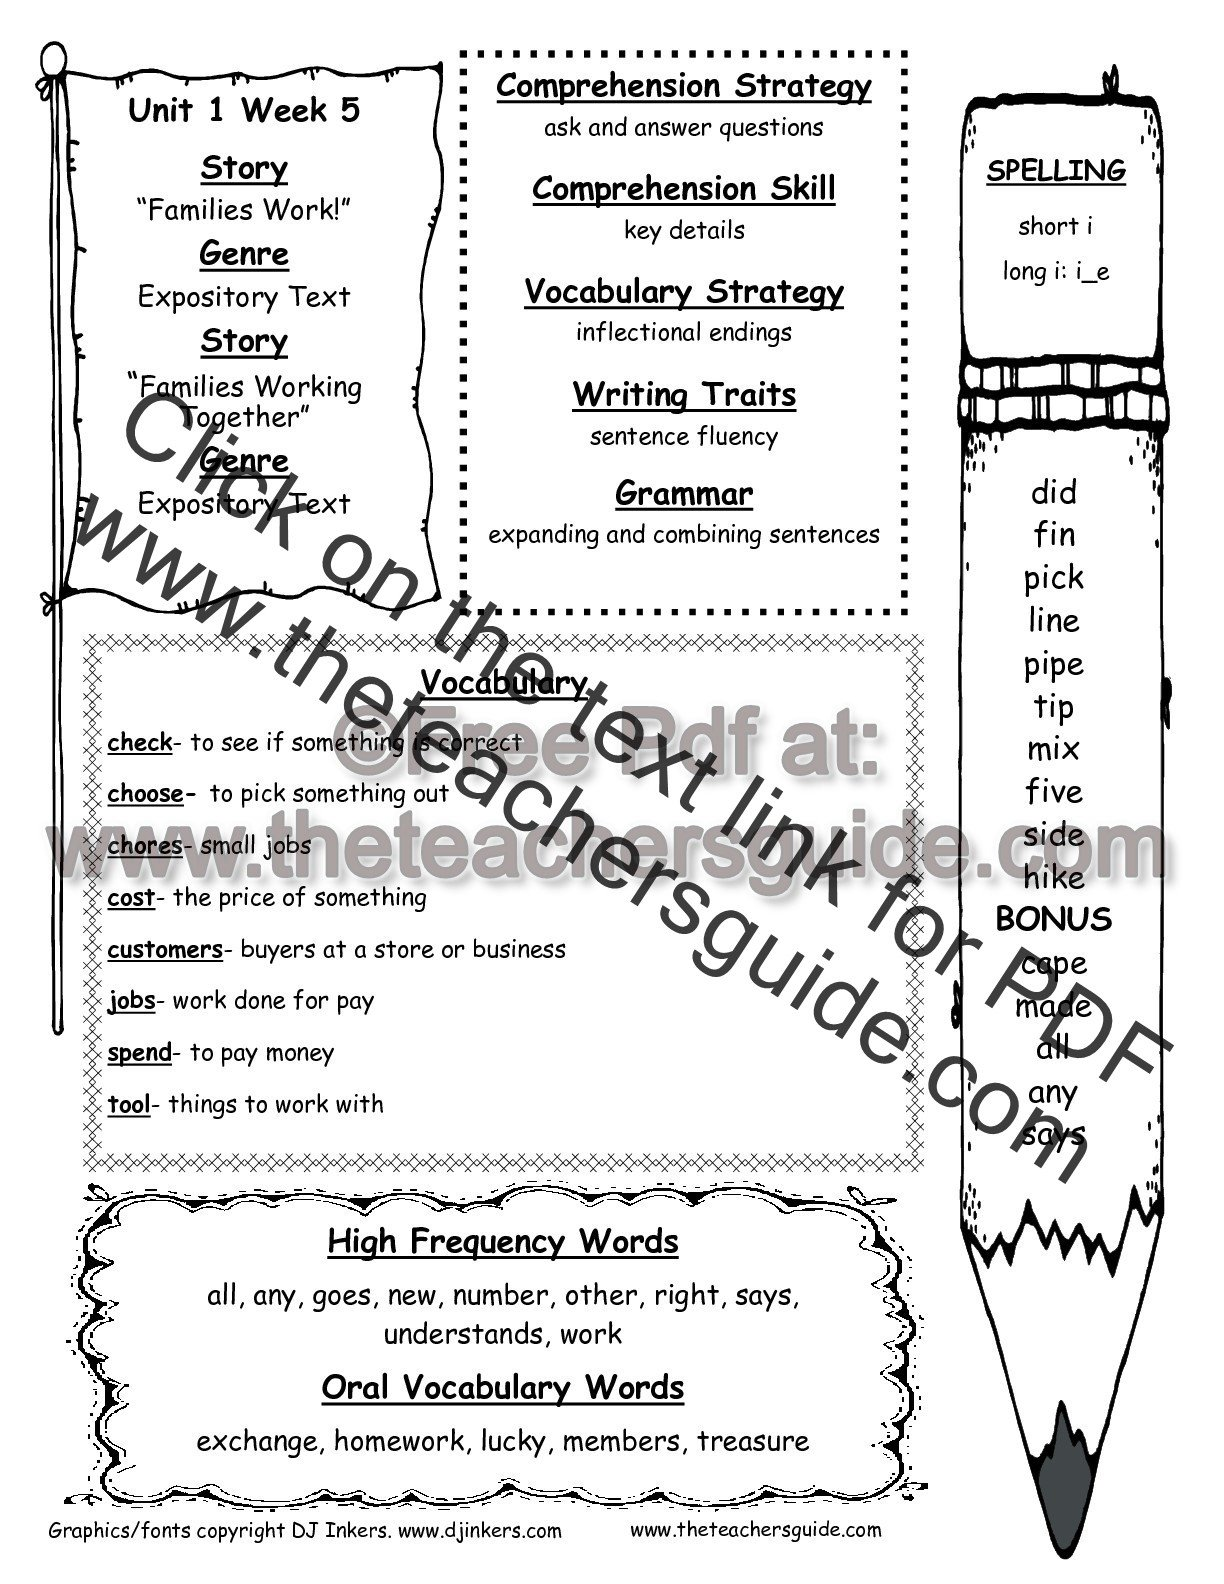 Possessive Pronouns Worksheet 2nd Grade Wonders Second Grade Unit E Week Five Printouts